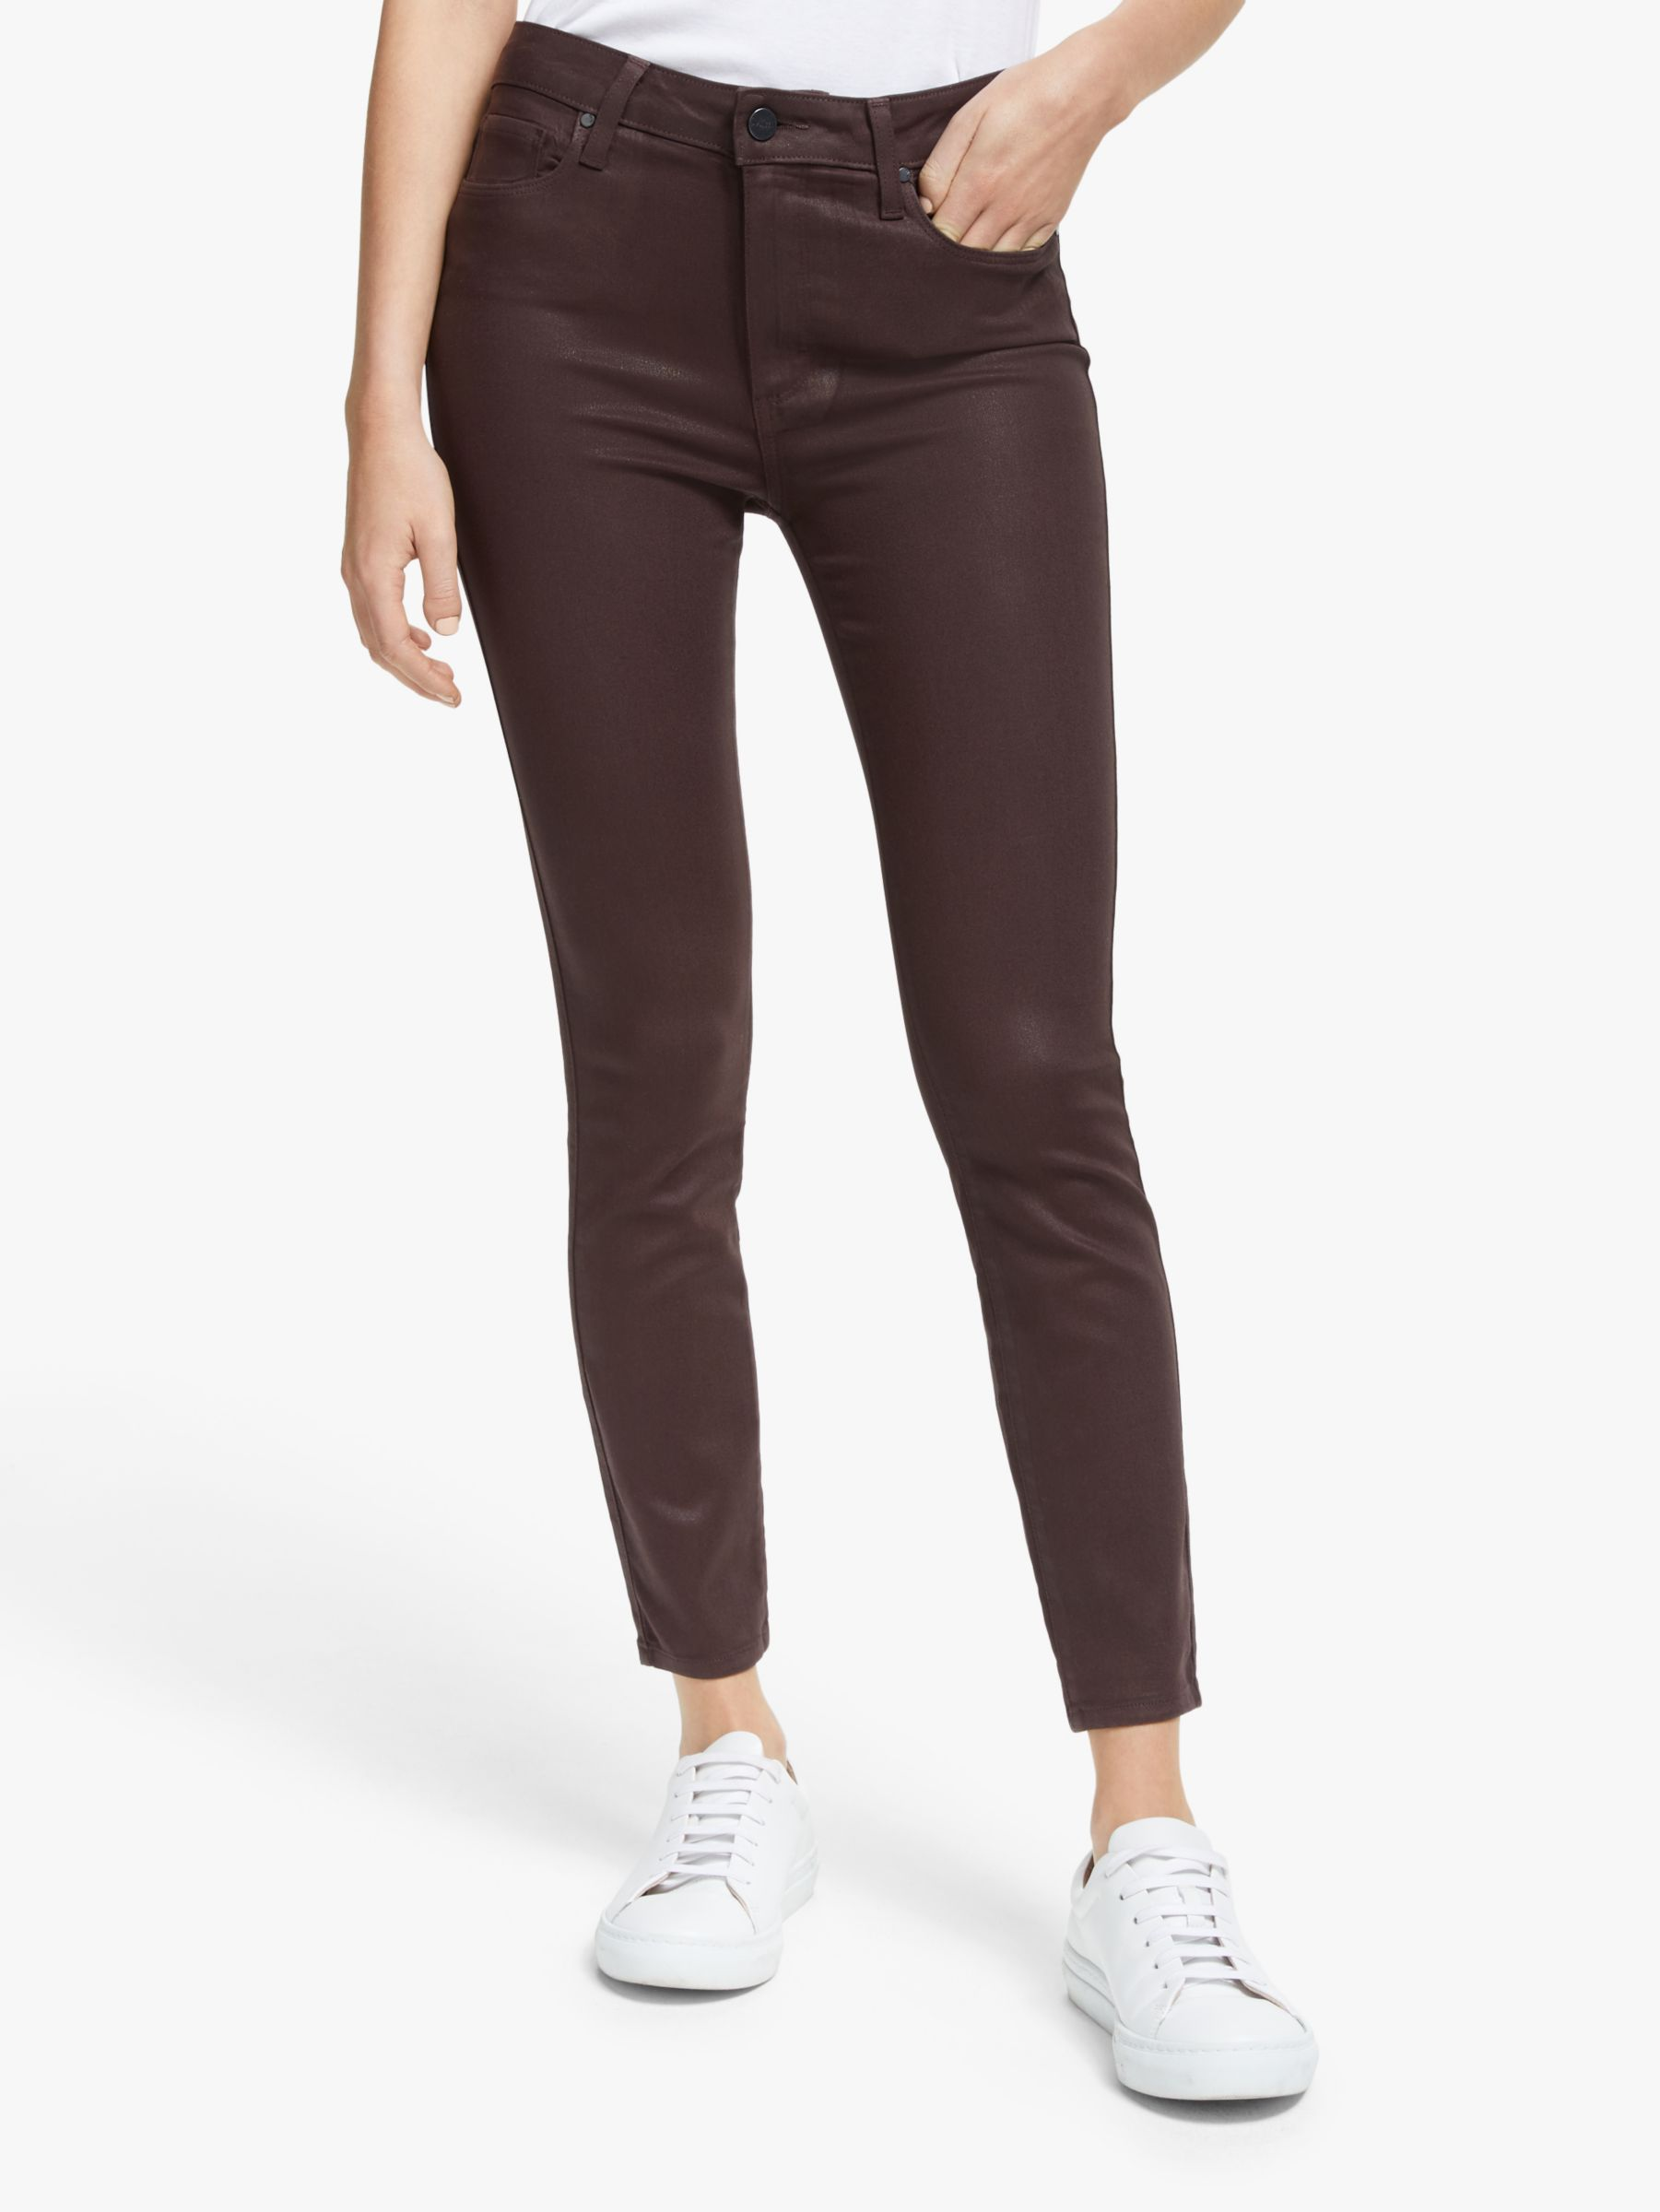 Paige Paige Hoxton Coated Skinny Ankle Jeans, Chicory Coffee